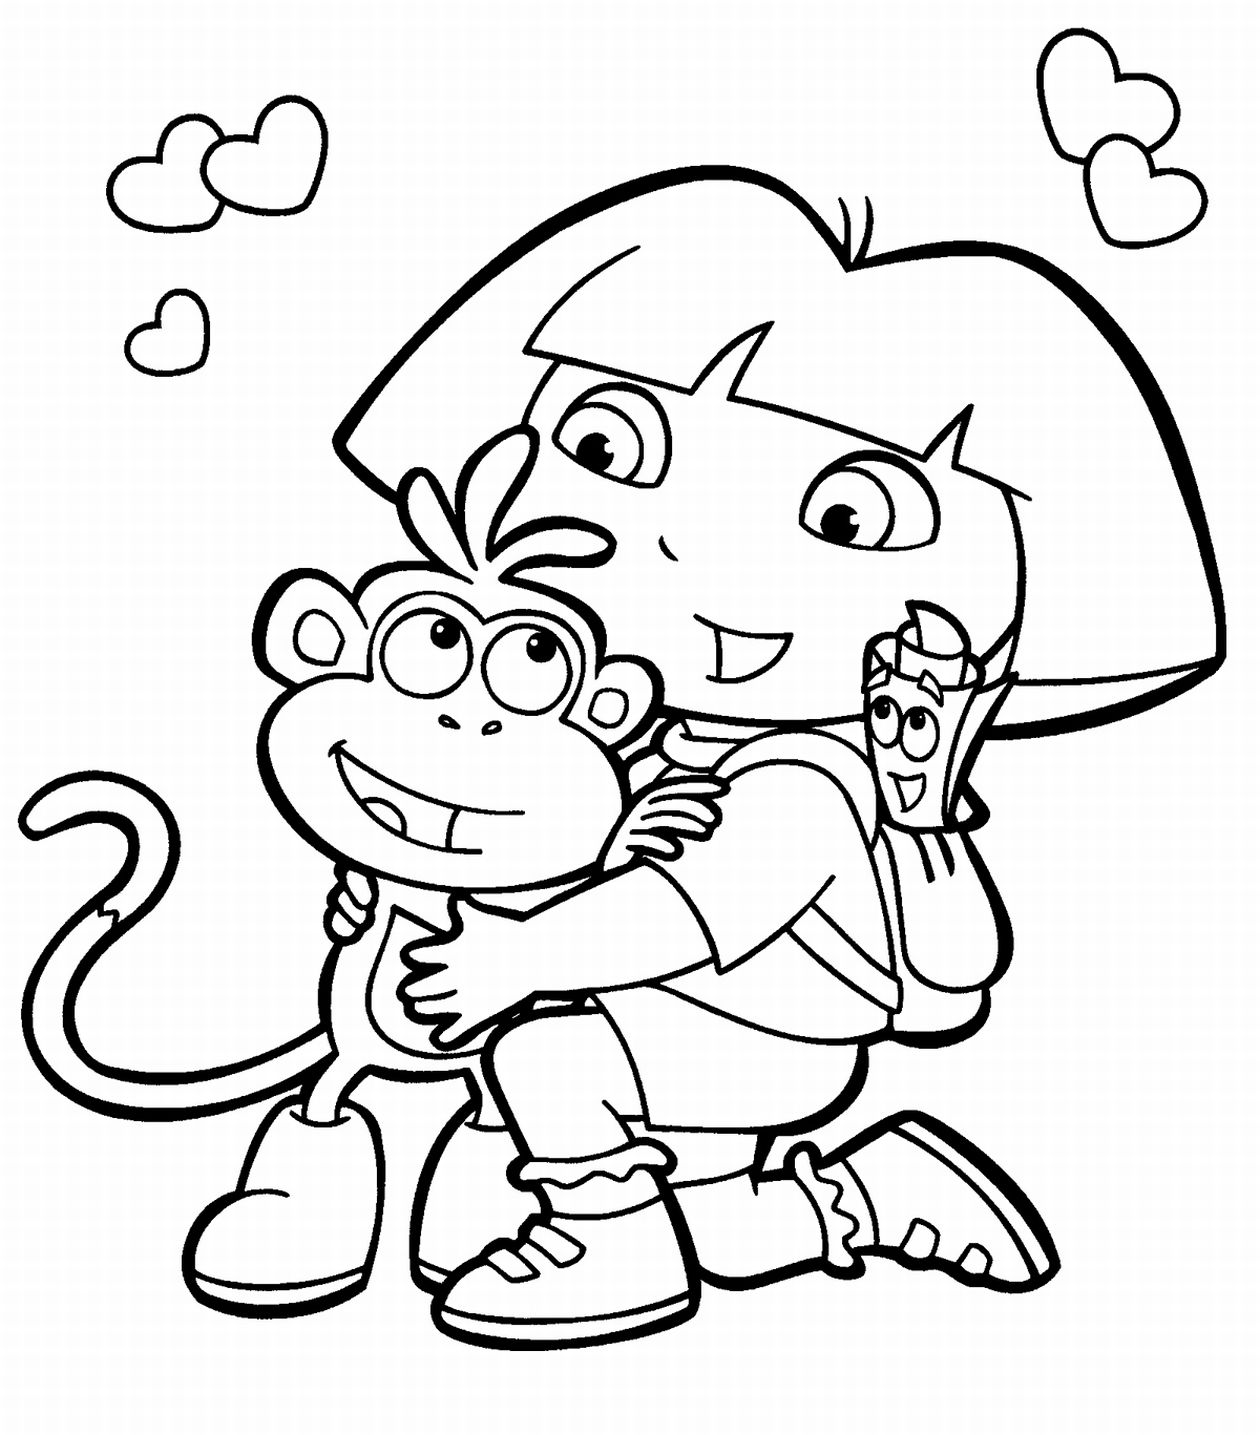 coloring pages to print and color - Coloring Pages to Print Raising Our Kids!